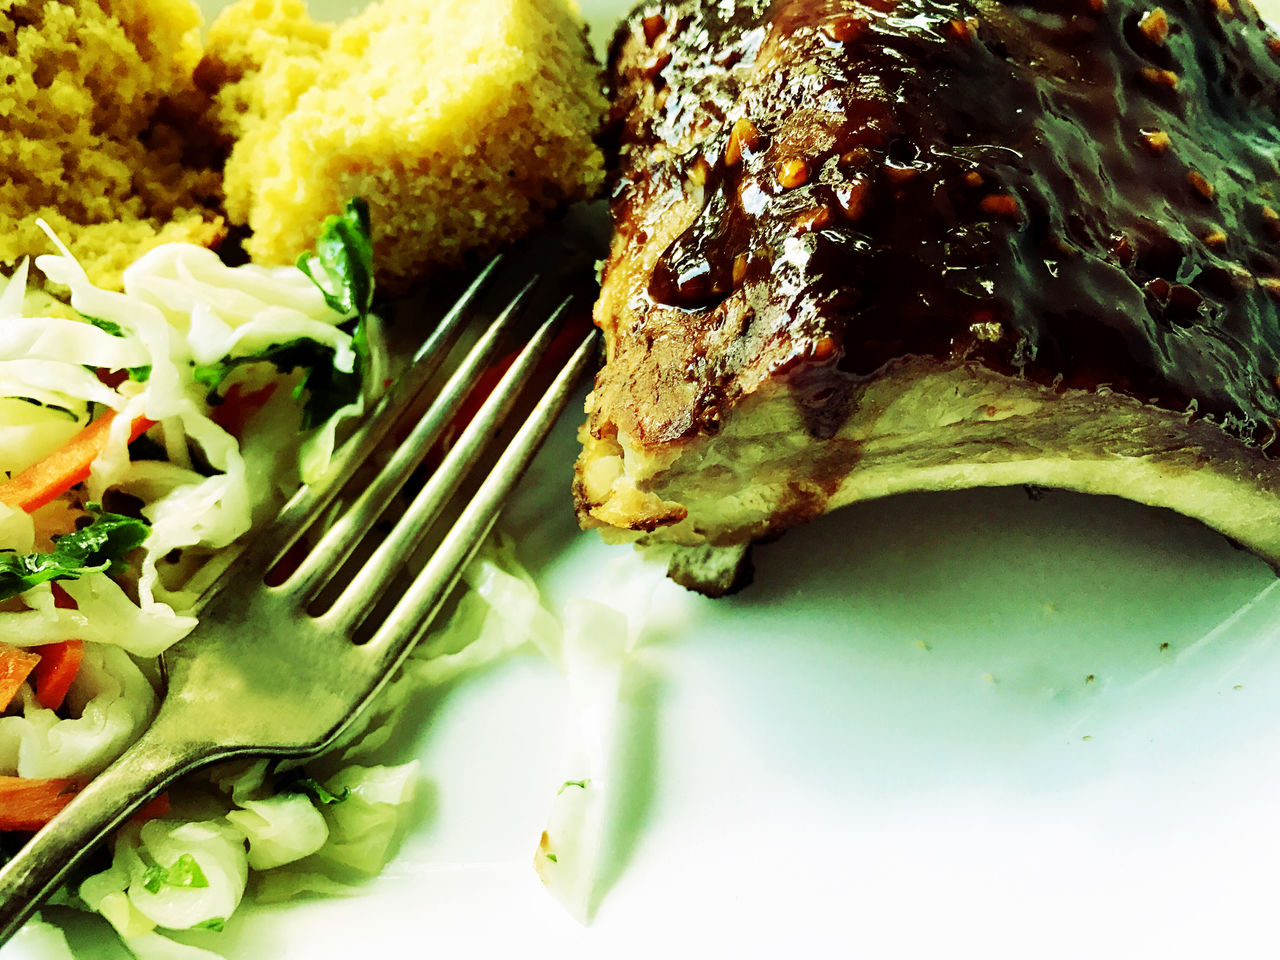 Barbecued rib dinner with copy space Baby Back Ribs Barbecue Sauce Barbecued Ribs Close-up Coleslaw Copy Space Cornbread Day Delicious Filtered Image Food Garlic Honey Indoors  Meat No People Phone Camera Pork Regional American Food Savory Food Serving Size Tasty Textures